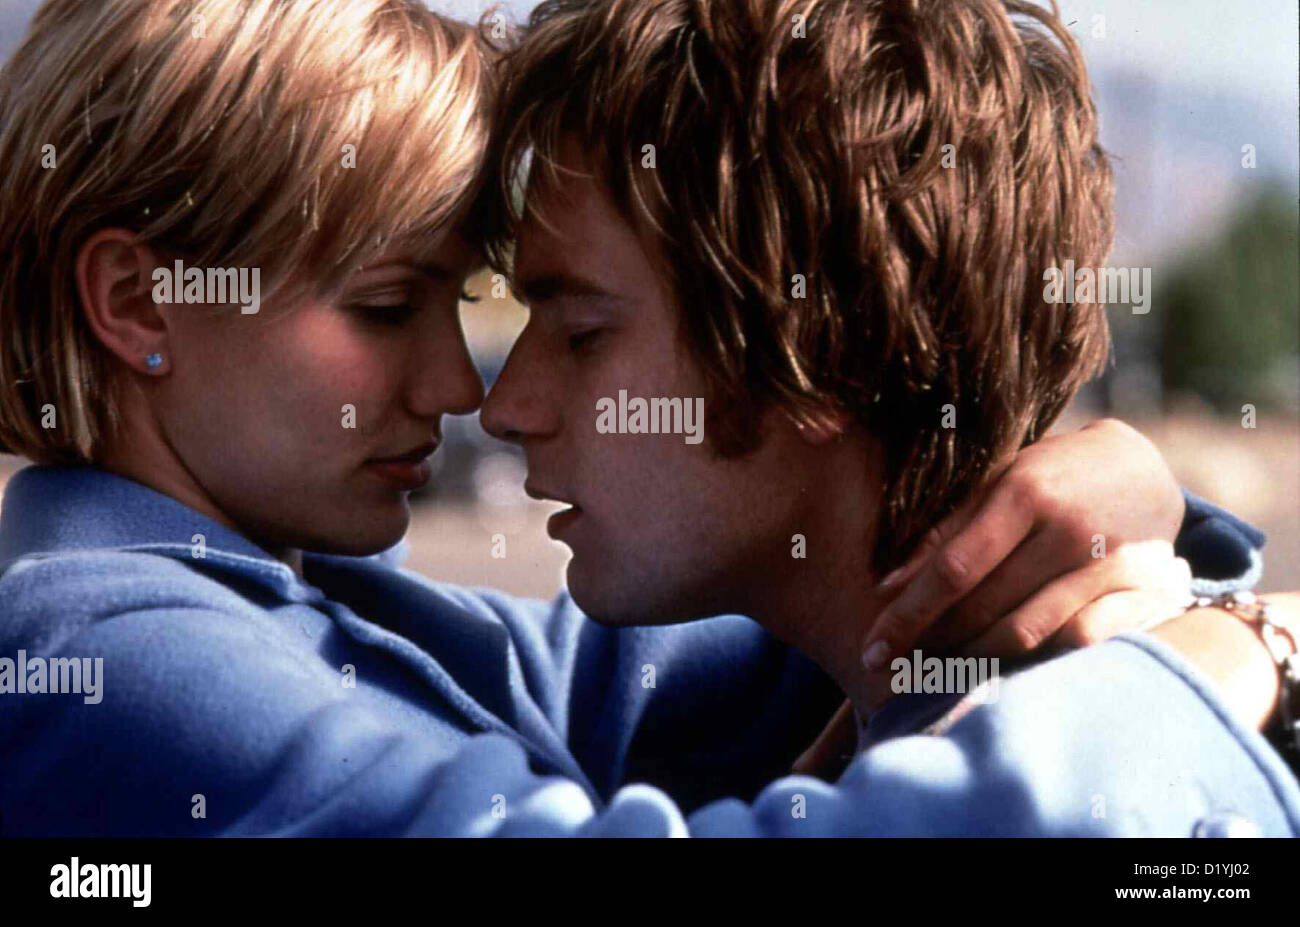 Lebe Lieber Ungewoehnlich  Life Less Ordinary,  Robert (Ewan McGregor) und Celine (Cameron Diaz) *** Local Caption - Stock Image